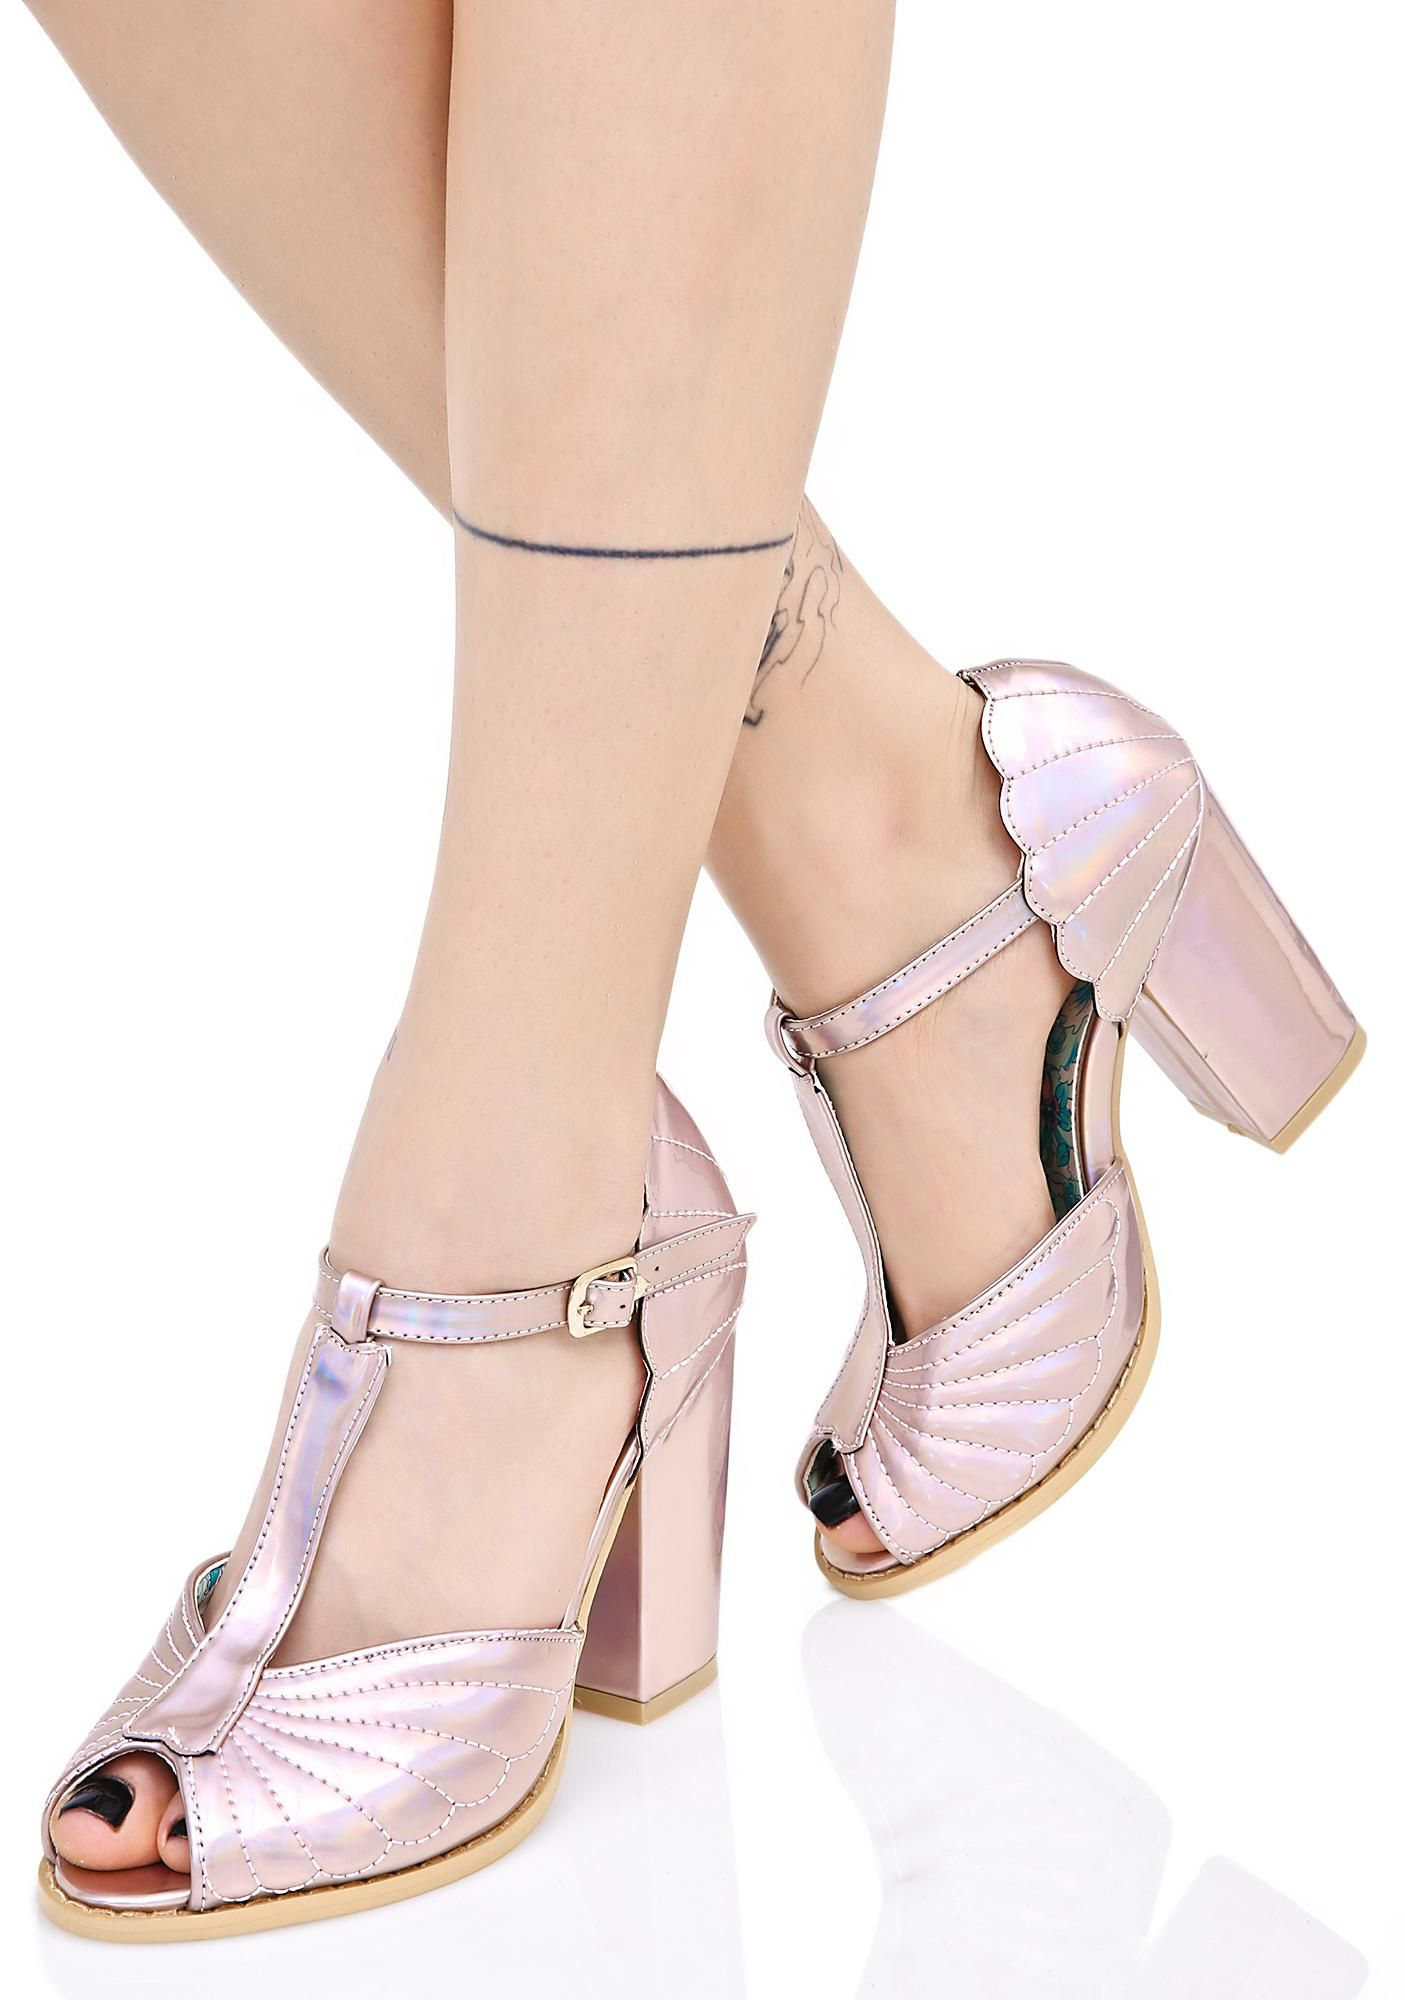 471efef46ee Iron fist mother of pearl heels youre a sight for sore sea eyes jpg  1405x2000 Pearl